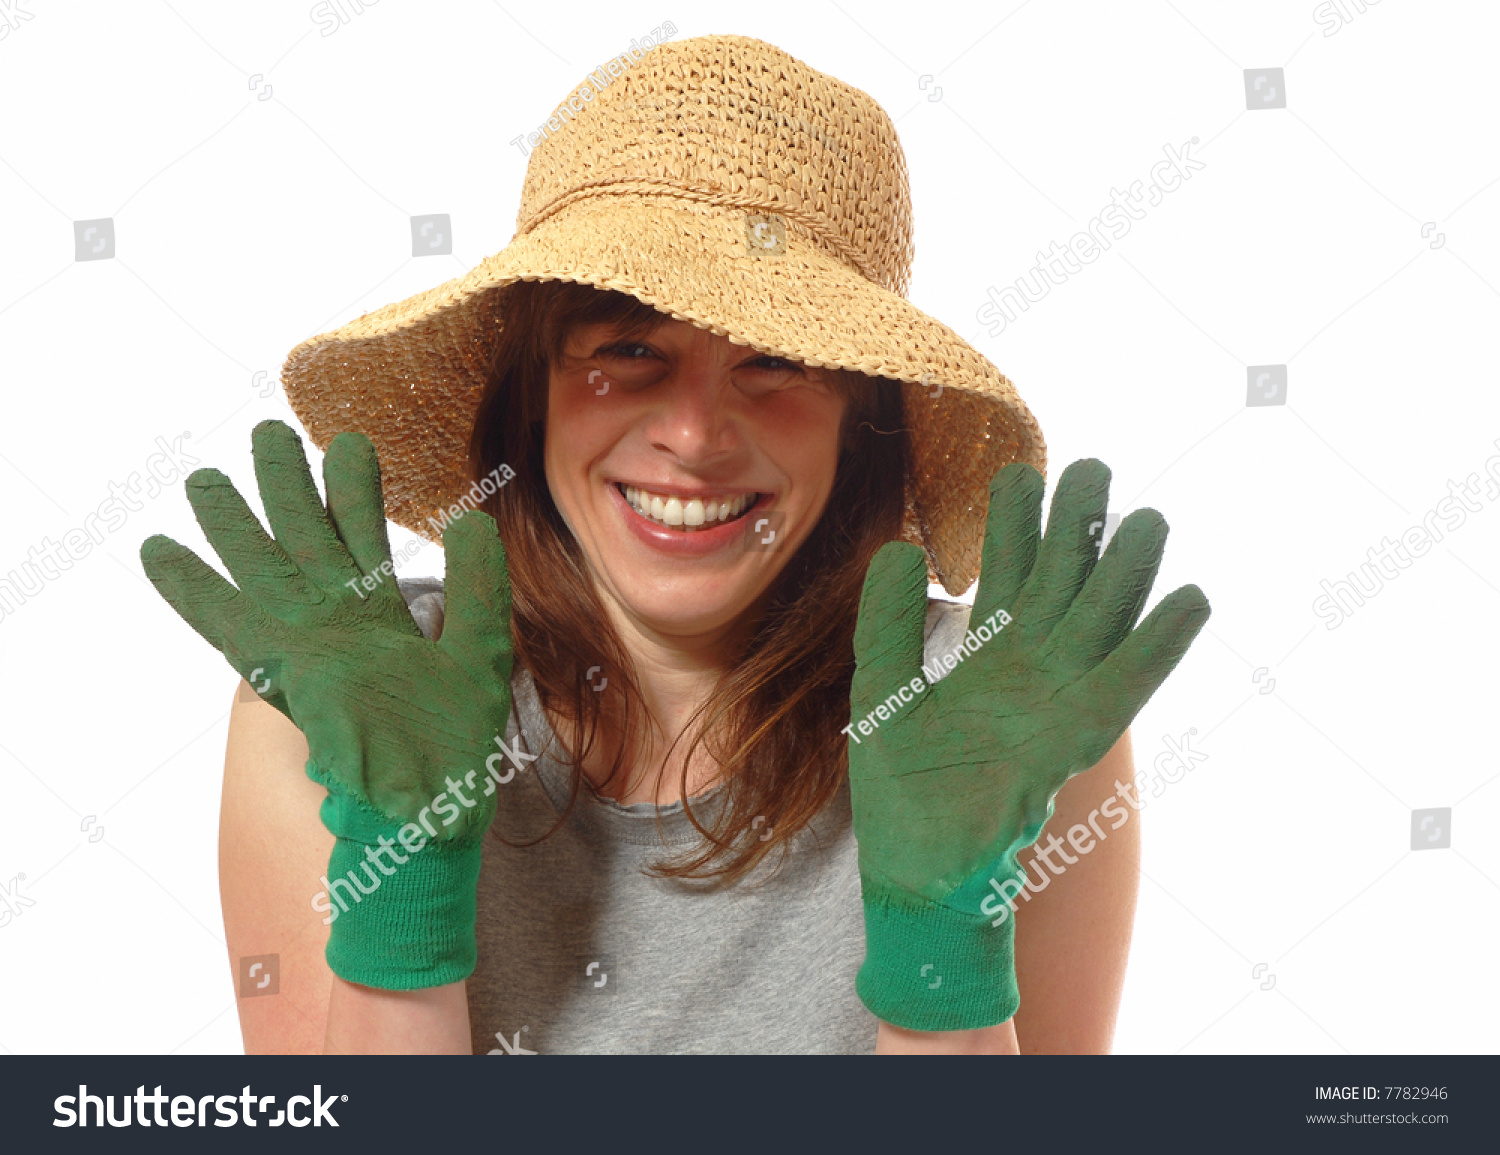 Cute Smiling Young Lady With Straw Hat U0026 Gardening Gloves, Isolated On White